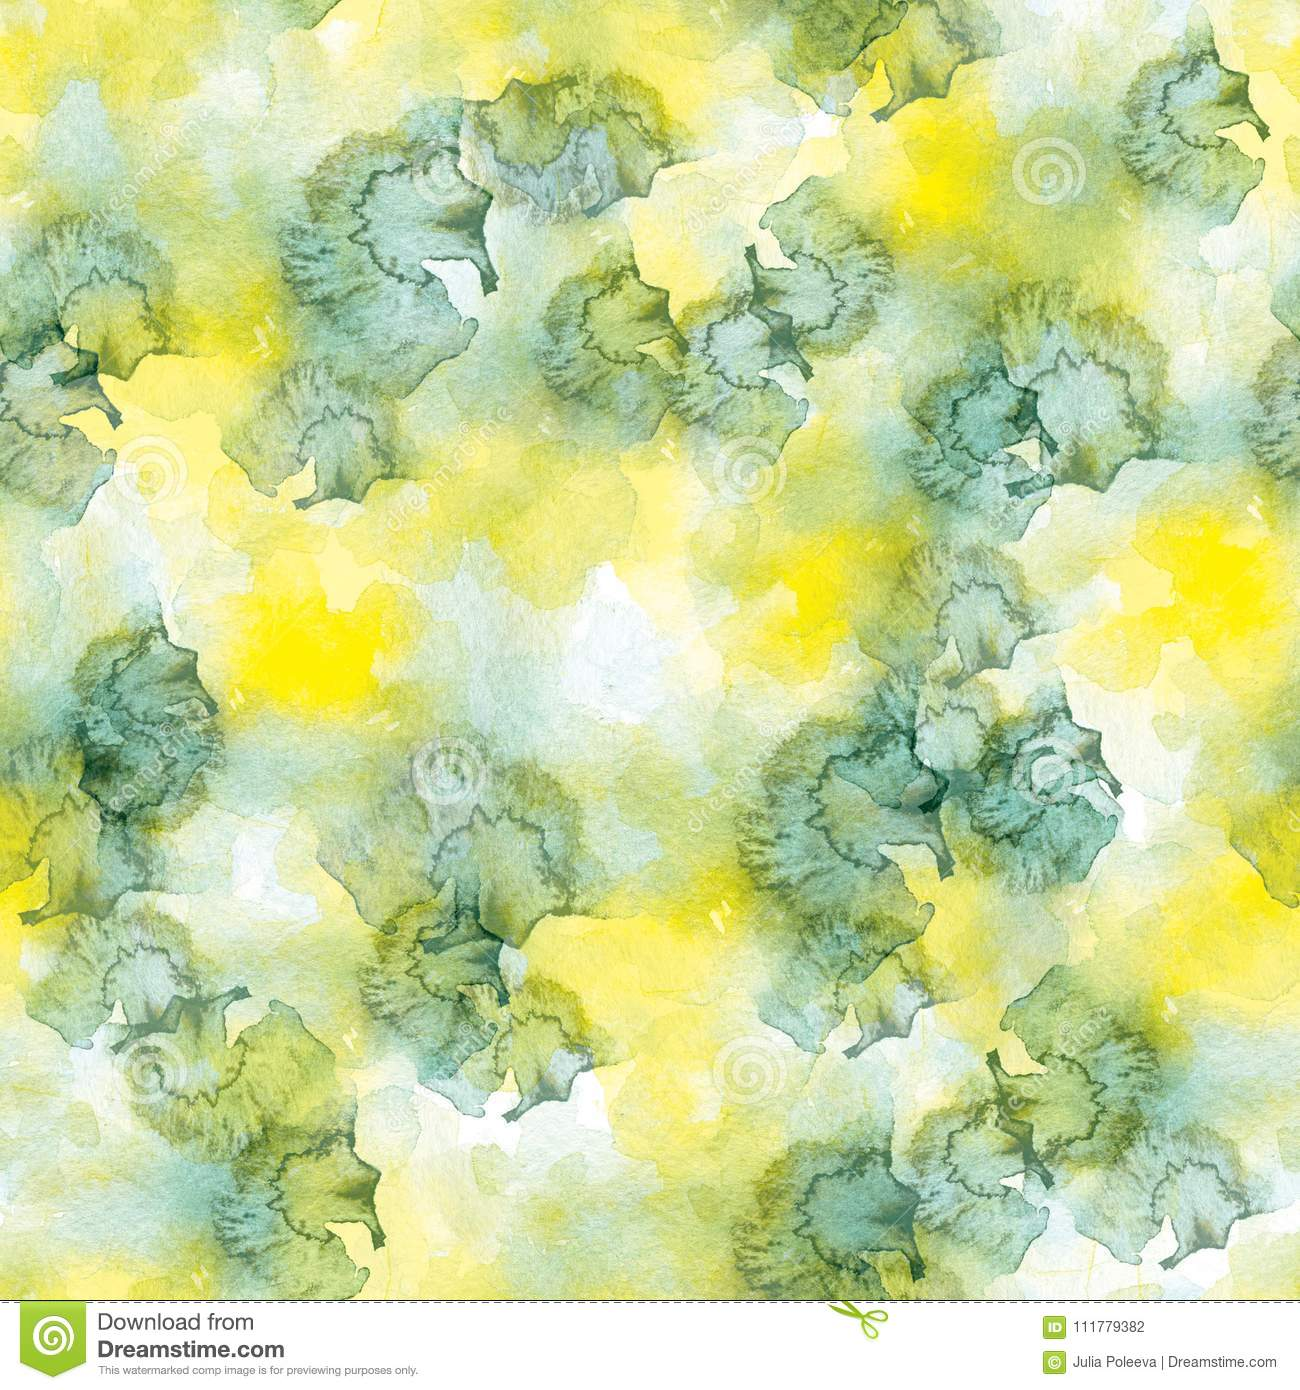 Seamless pattern of green and yellow watercolor stains on white background